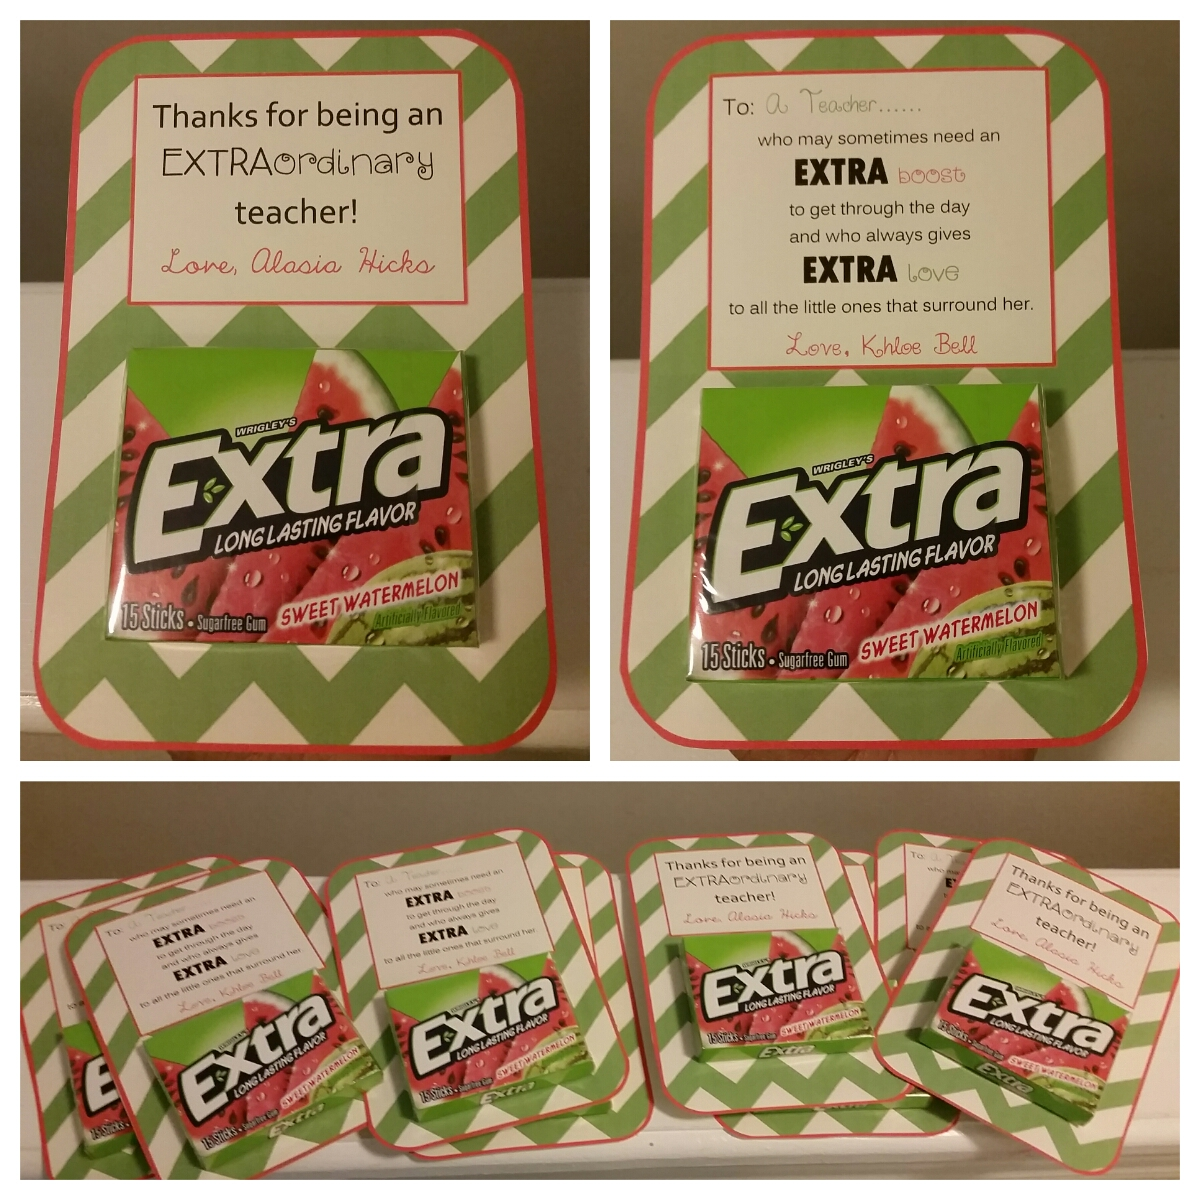 a southern bell s guide to diy projects and couponing extra gum